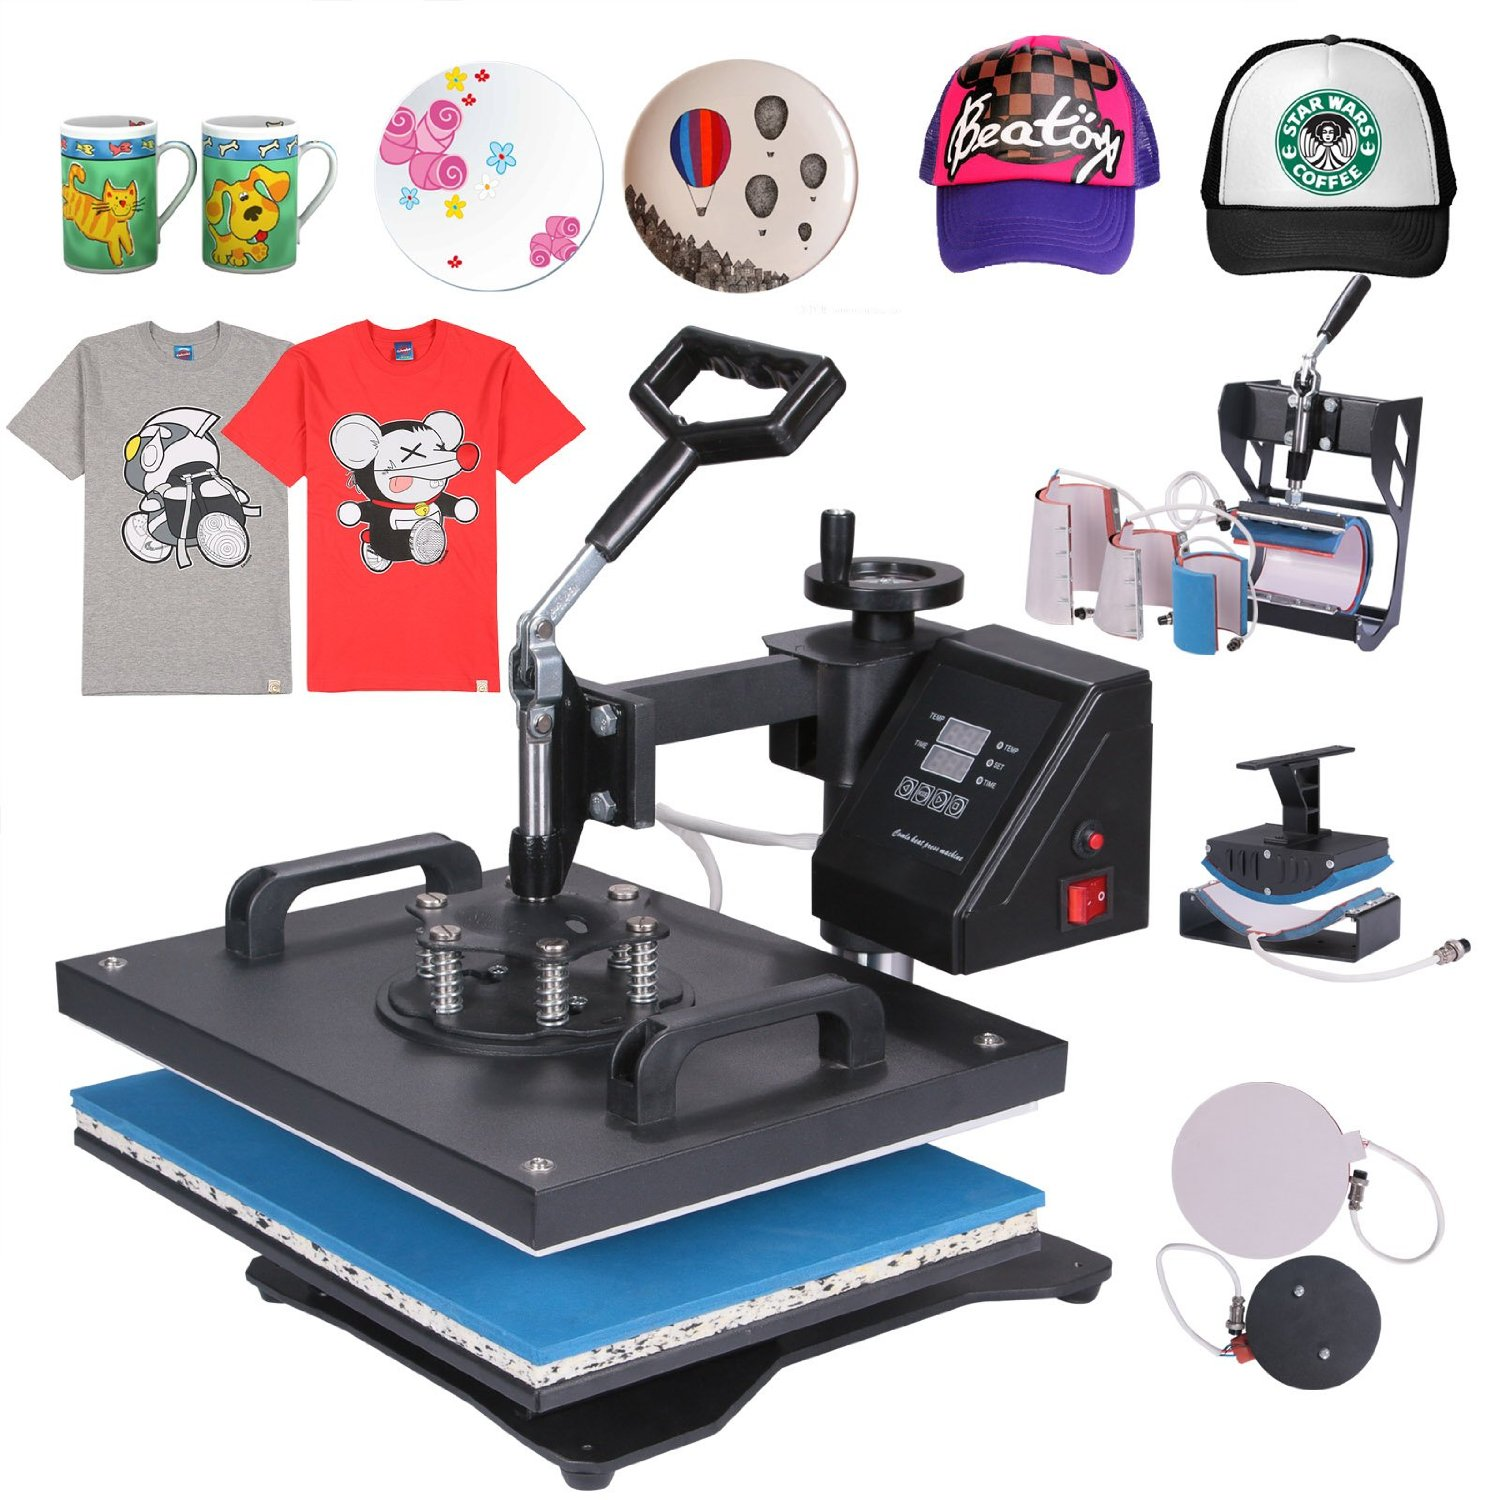 Sublimation Press Heat Press Machines Mophorn Heat Press 8 In 1 Multifunction